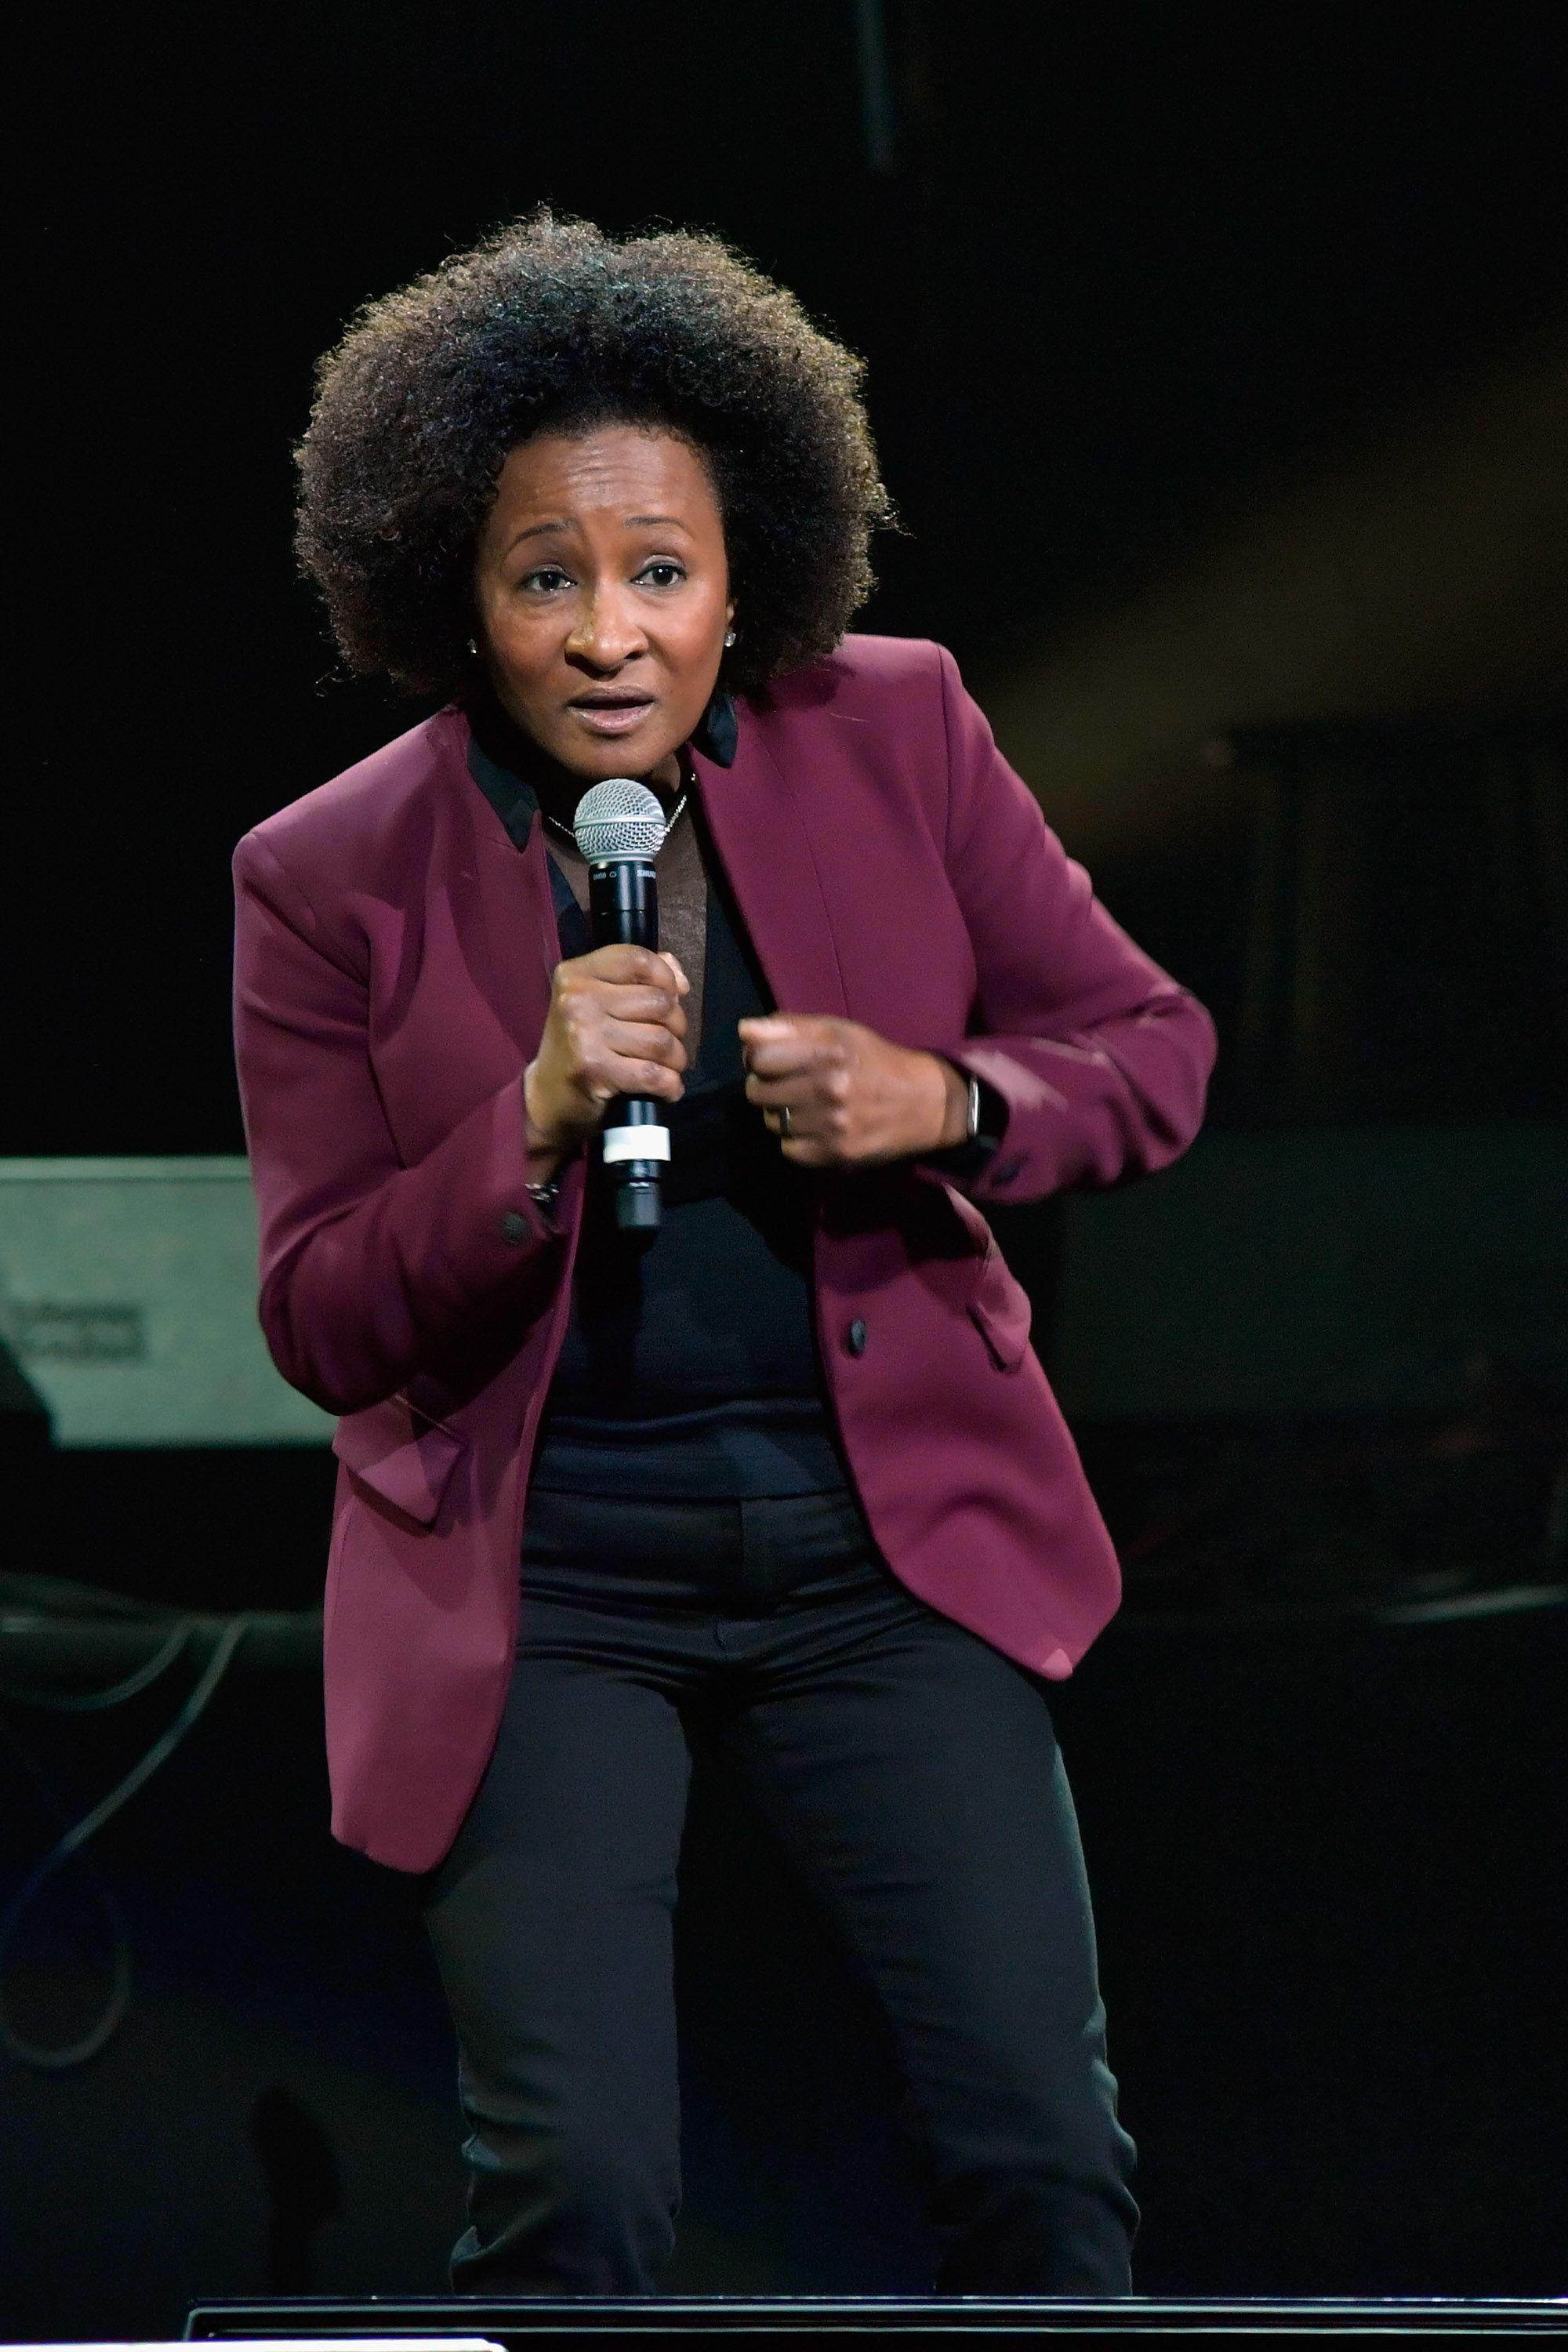 BOSTON, MA - NOVEMBER 12:  Wanda Sykes performs at the 22nd Annual Comics Come Home performance to benefit the Cam Neely Foundation for Cancer Care which provides comfort, support and hope to adult and pediatric cancer patients and their families at TD Garden on November 12, 2016 in Boston, Massachusetts.  (Photo by Paul Marotta/Getty Images)